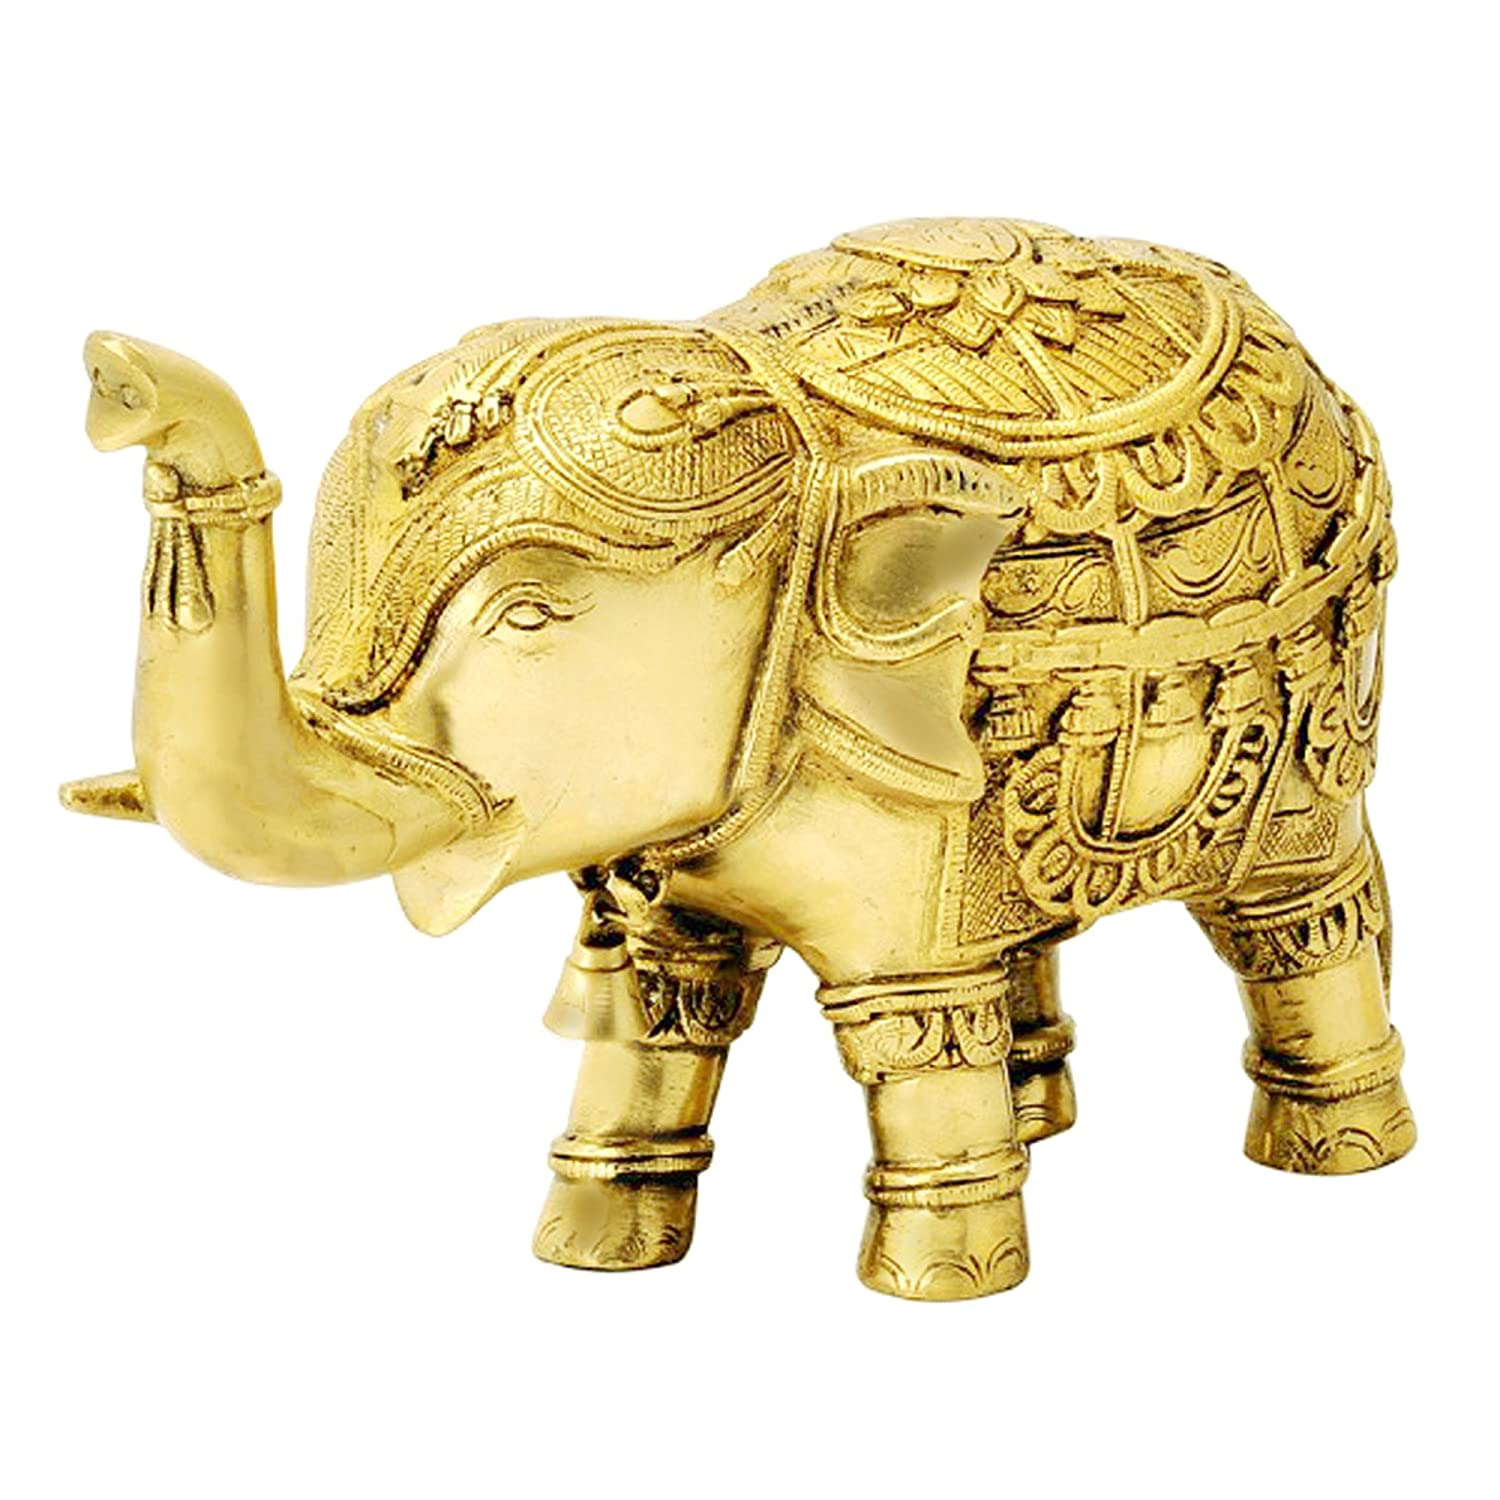 Buy itos365 brass trunk up elephant statues showpiece metal statue buy itos365 brass trunk up elephant statues showpiece metal statue lucky figurine home dcor gifts item online at low prices in india amazon biocorpaavc Images